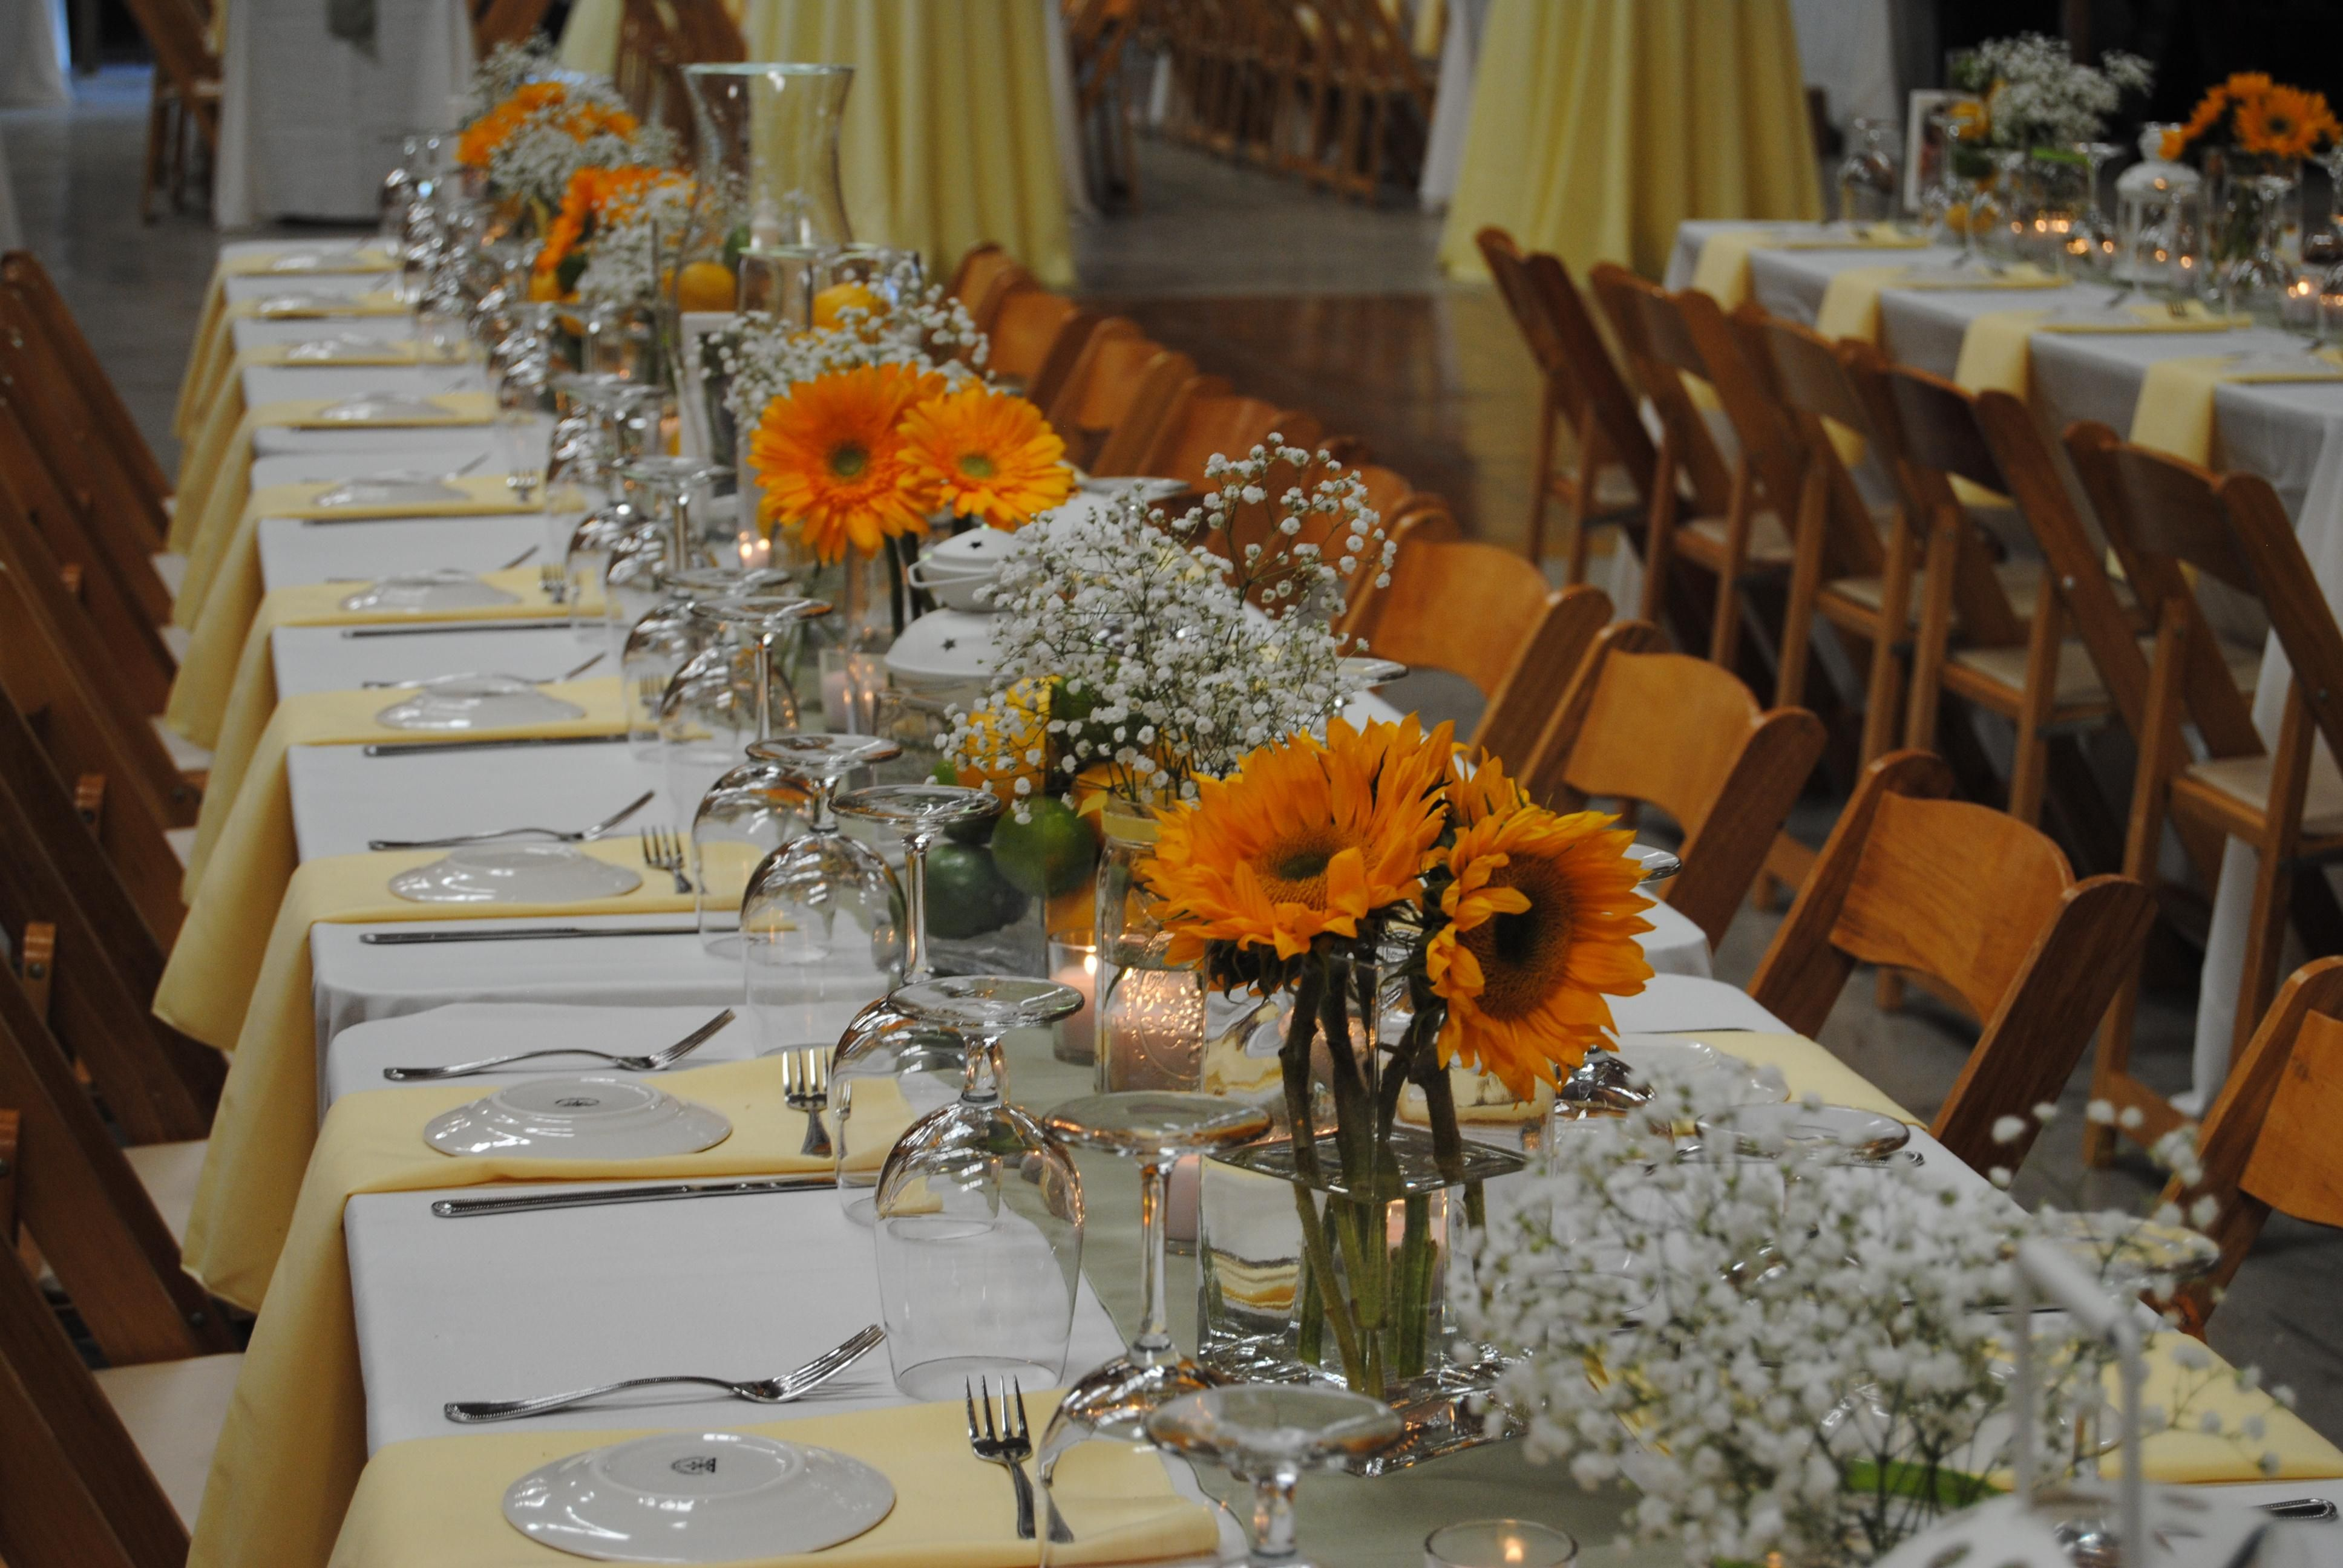 Table decoration for two - Sunflower Centerpiece An Idea For Square Rectangle Tables For A Small Square